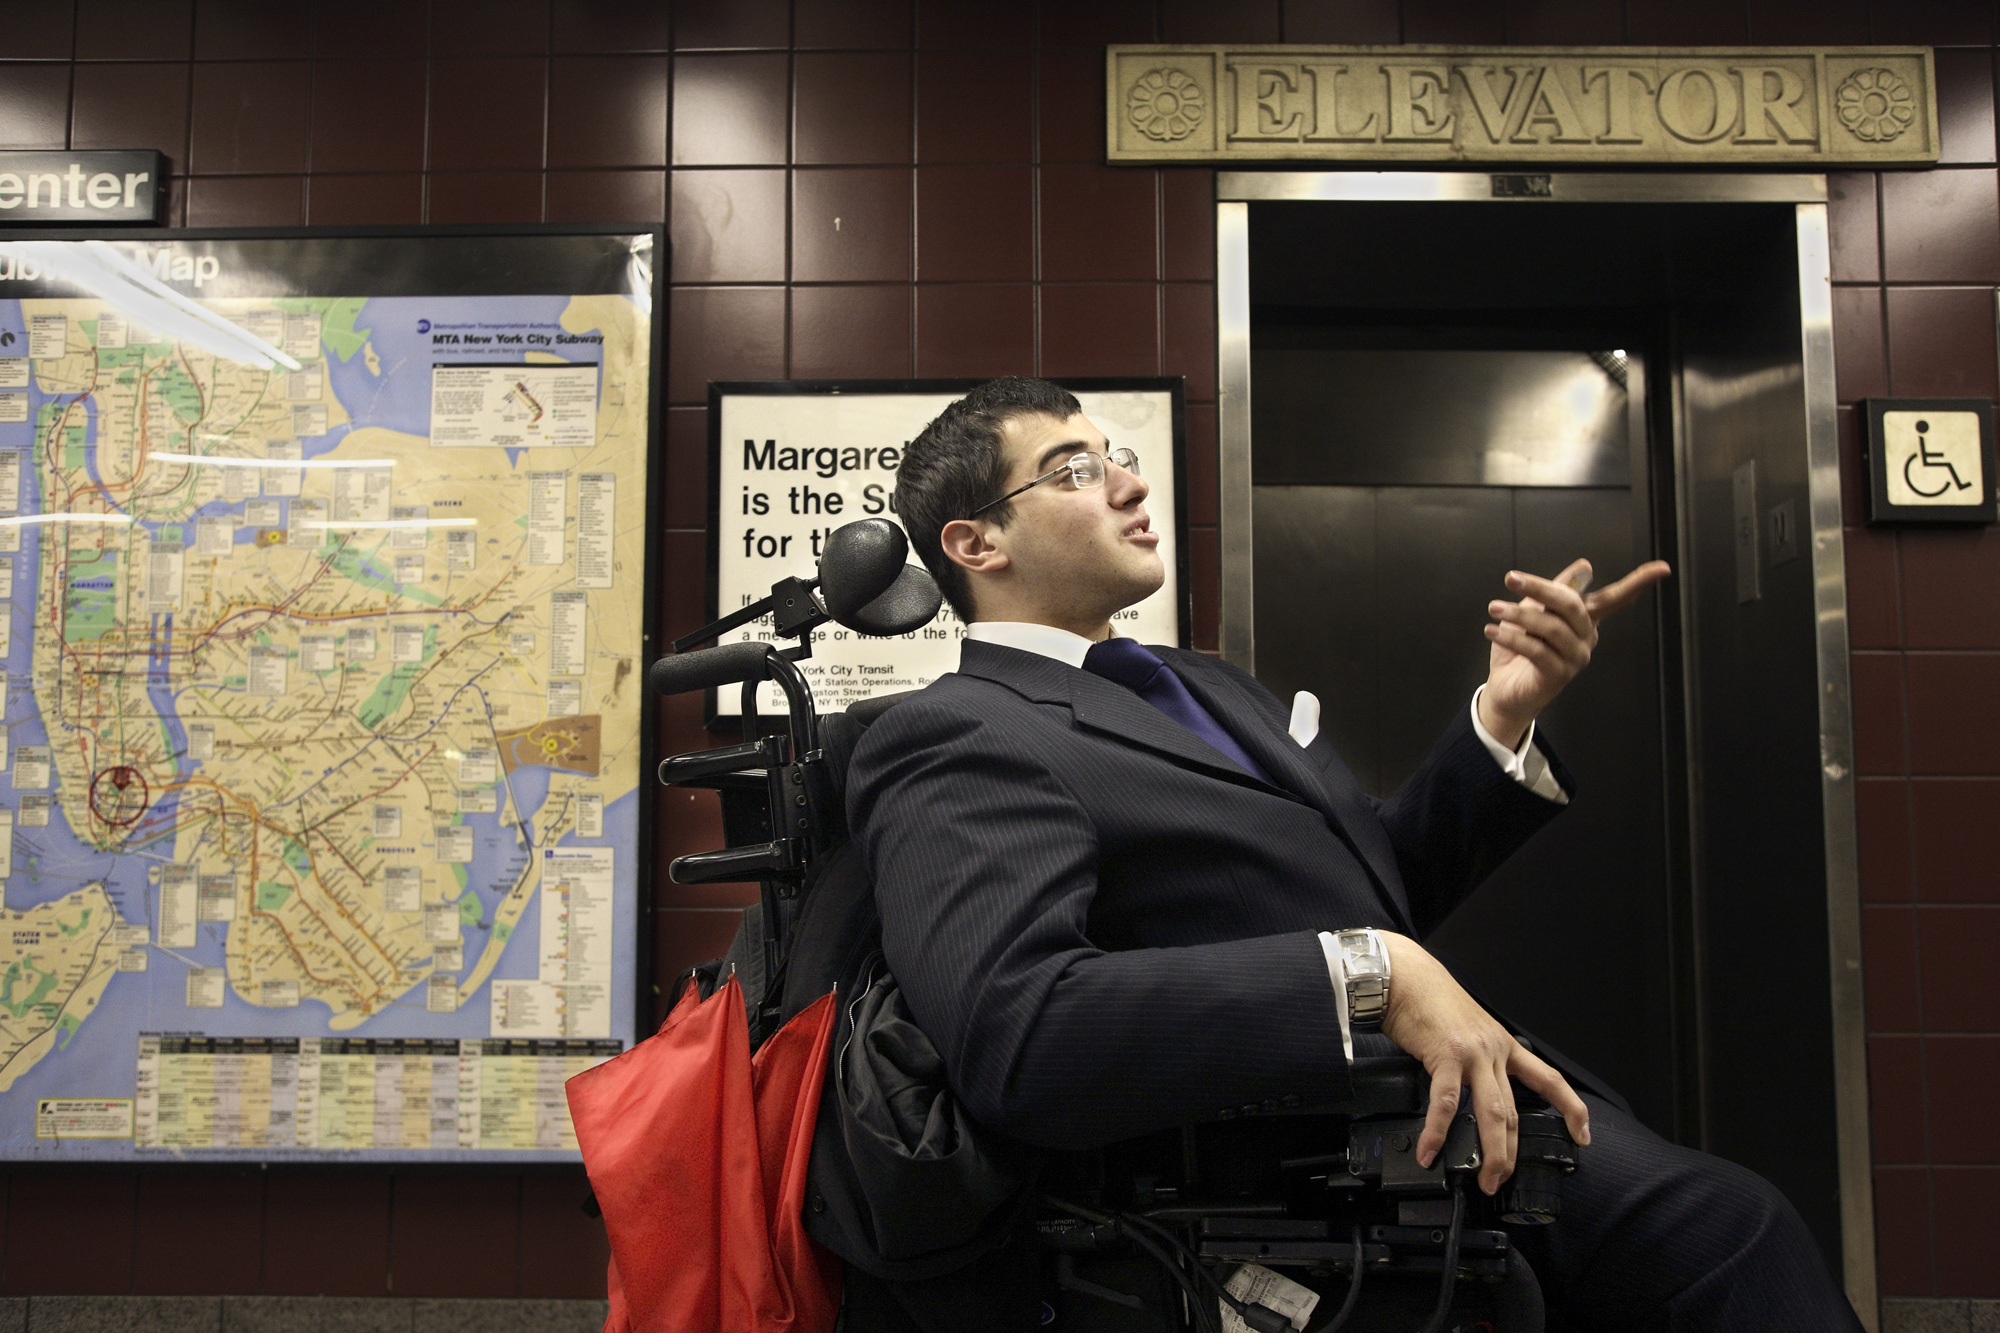 A man wearing a suit in a wheelchair in front of an elevator.